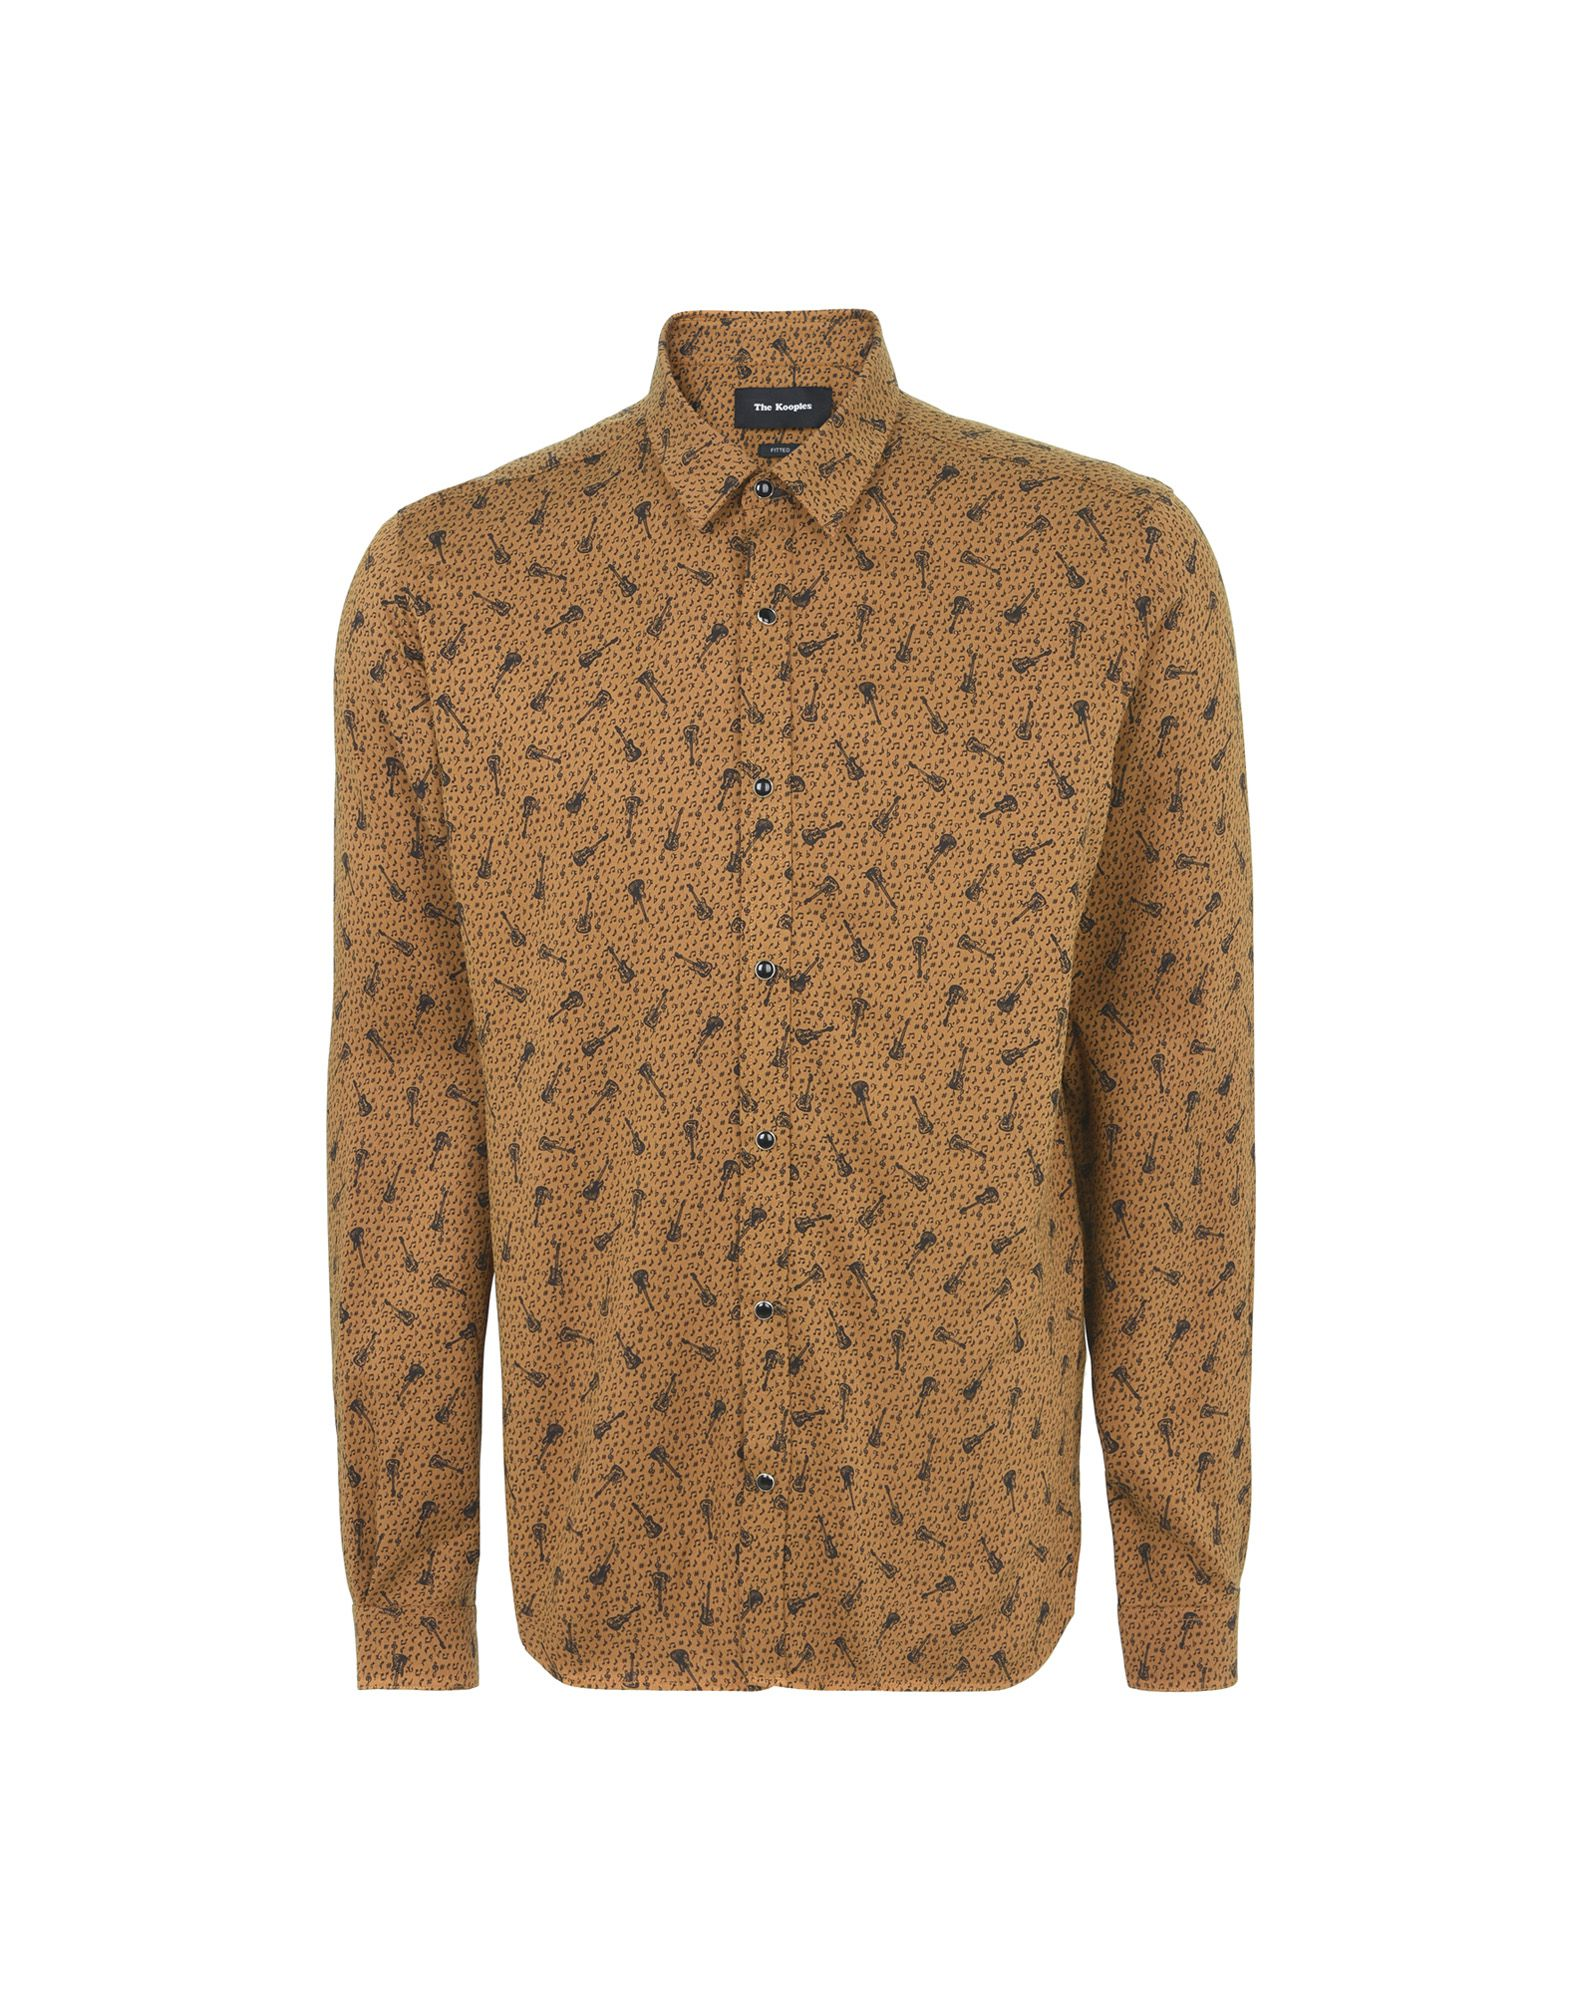 Camicia Fantasia The Kooples Printed Shirt With A Classic Collar - Uomo - Acquista online su